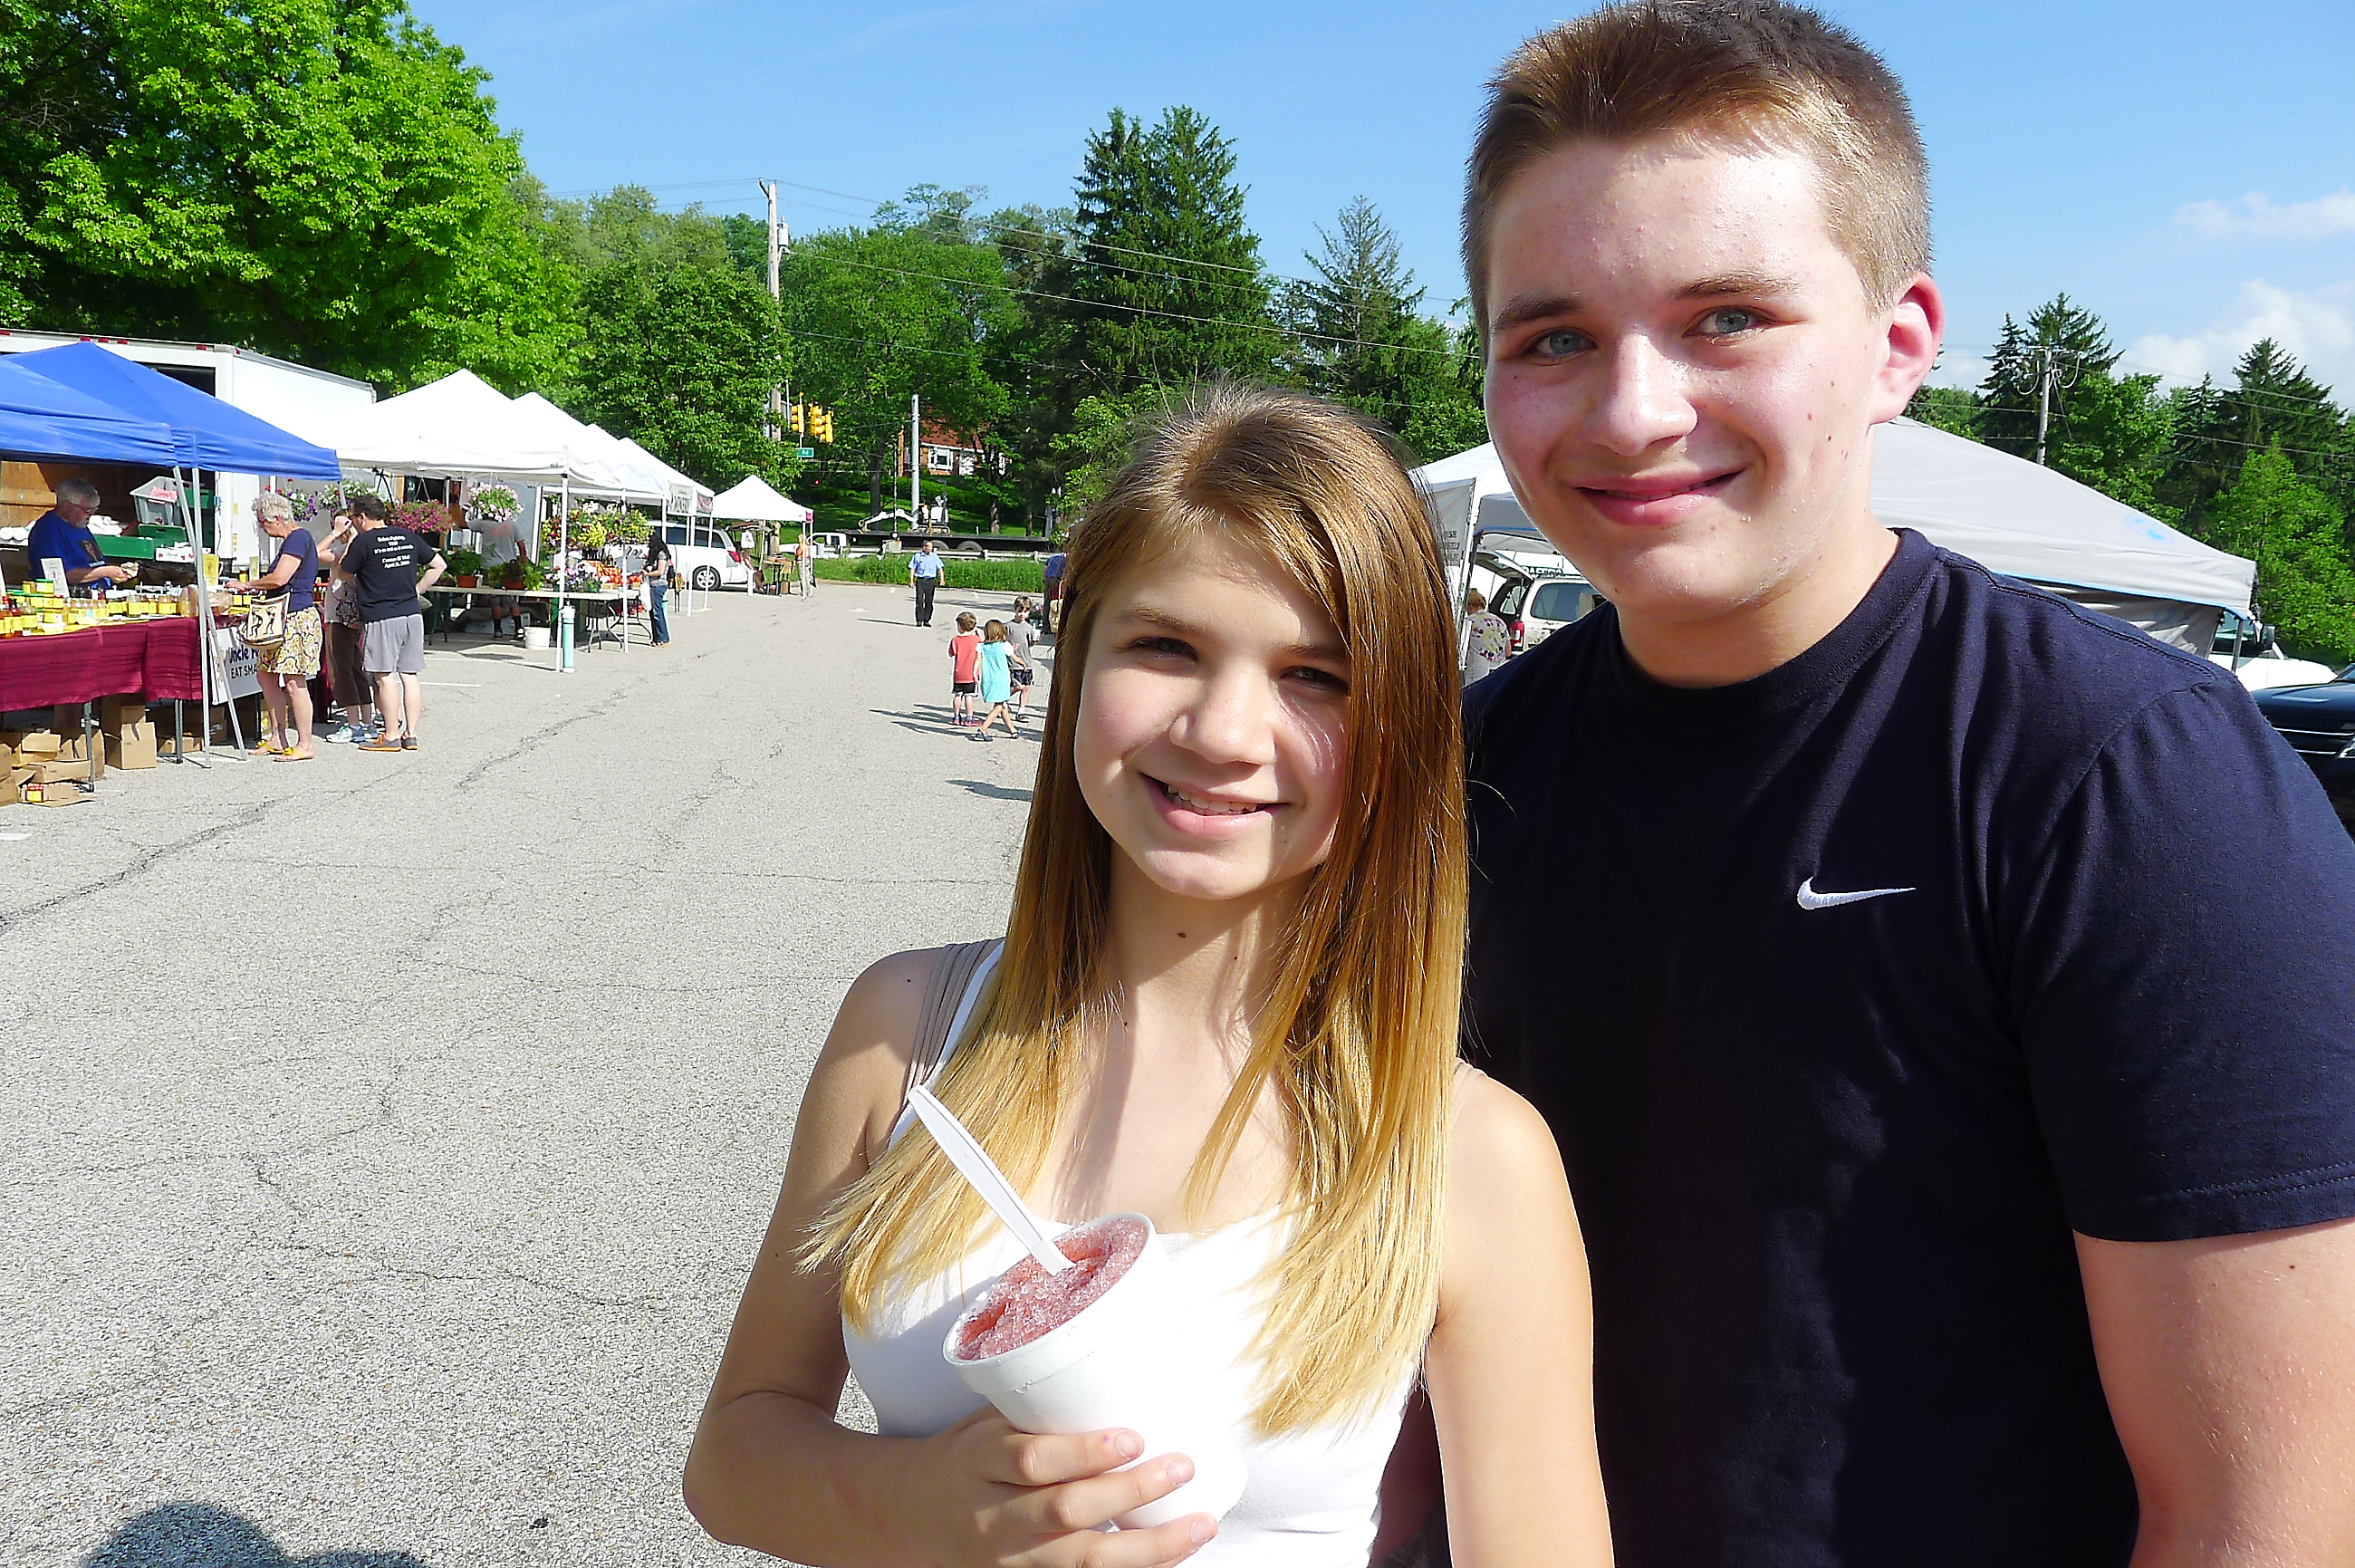 P1230876-20 Susan Mathie and Dominic Ivol strolled through with their pomegranate shaved ices at opening day at the Upper St. Clair Farmers Market on May 29.